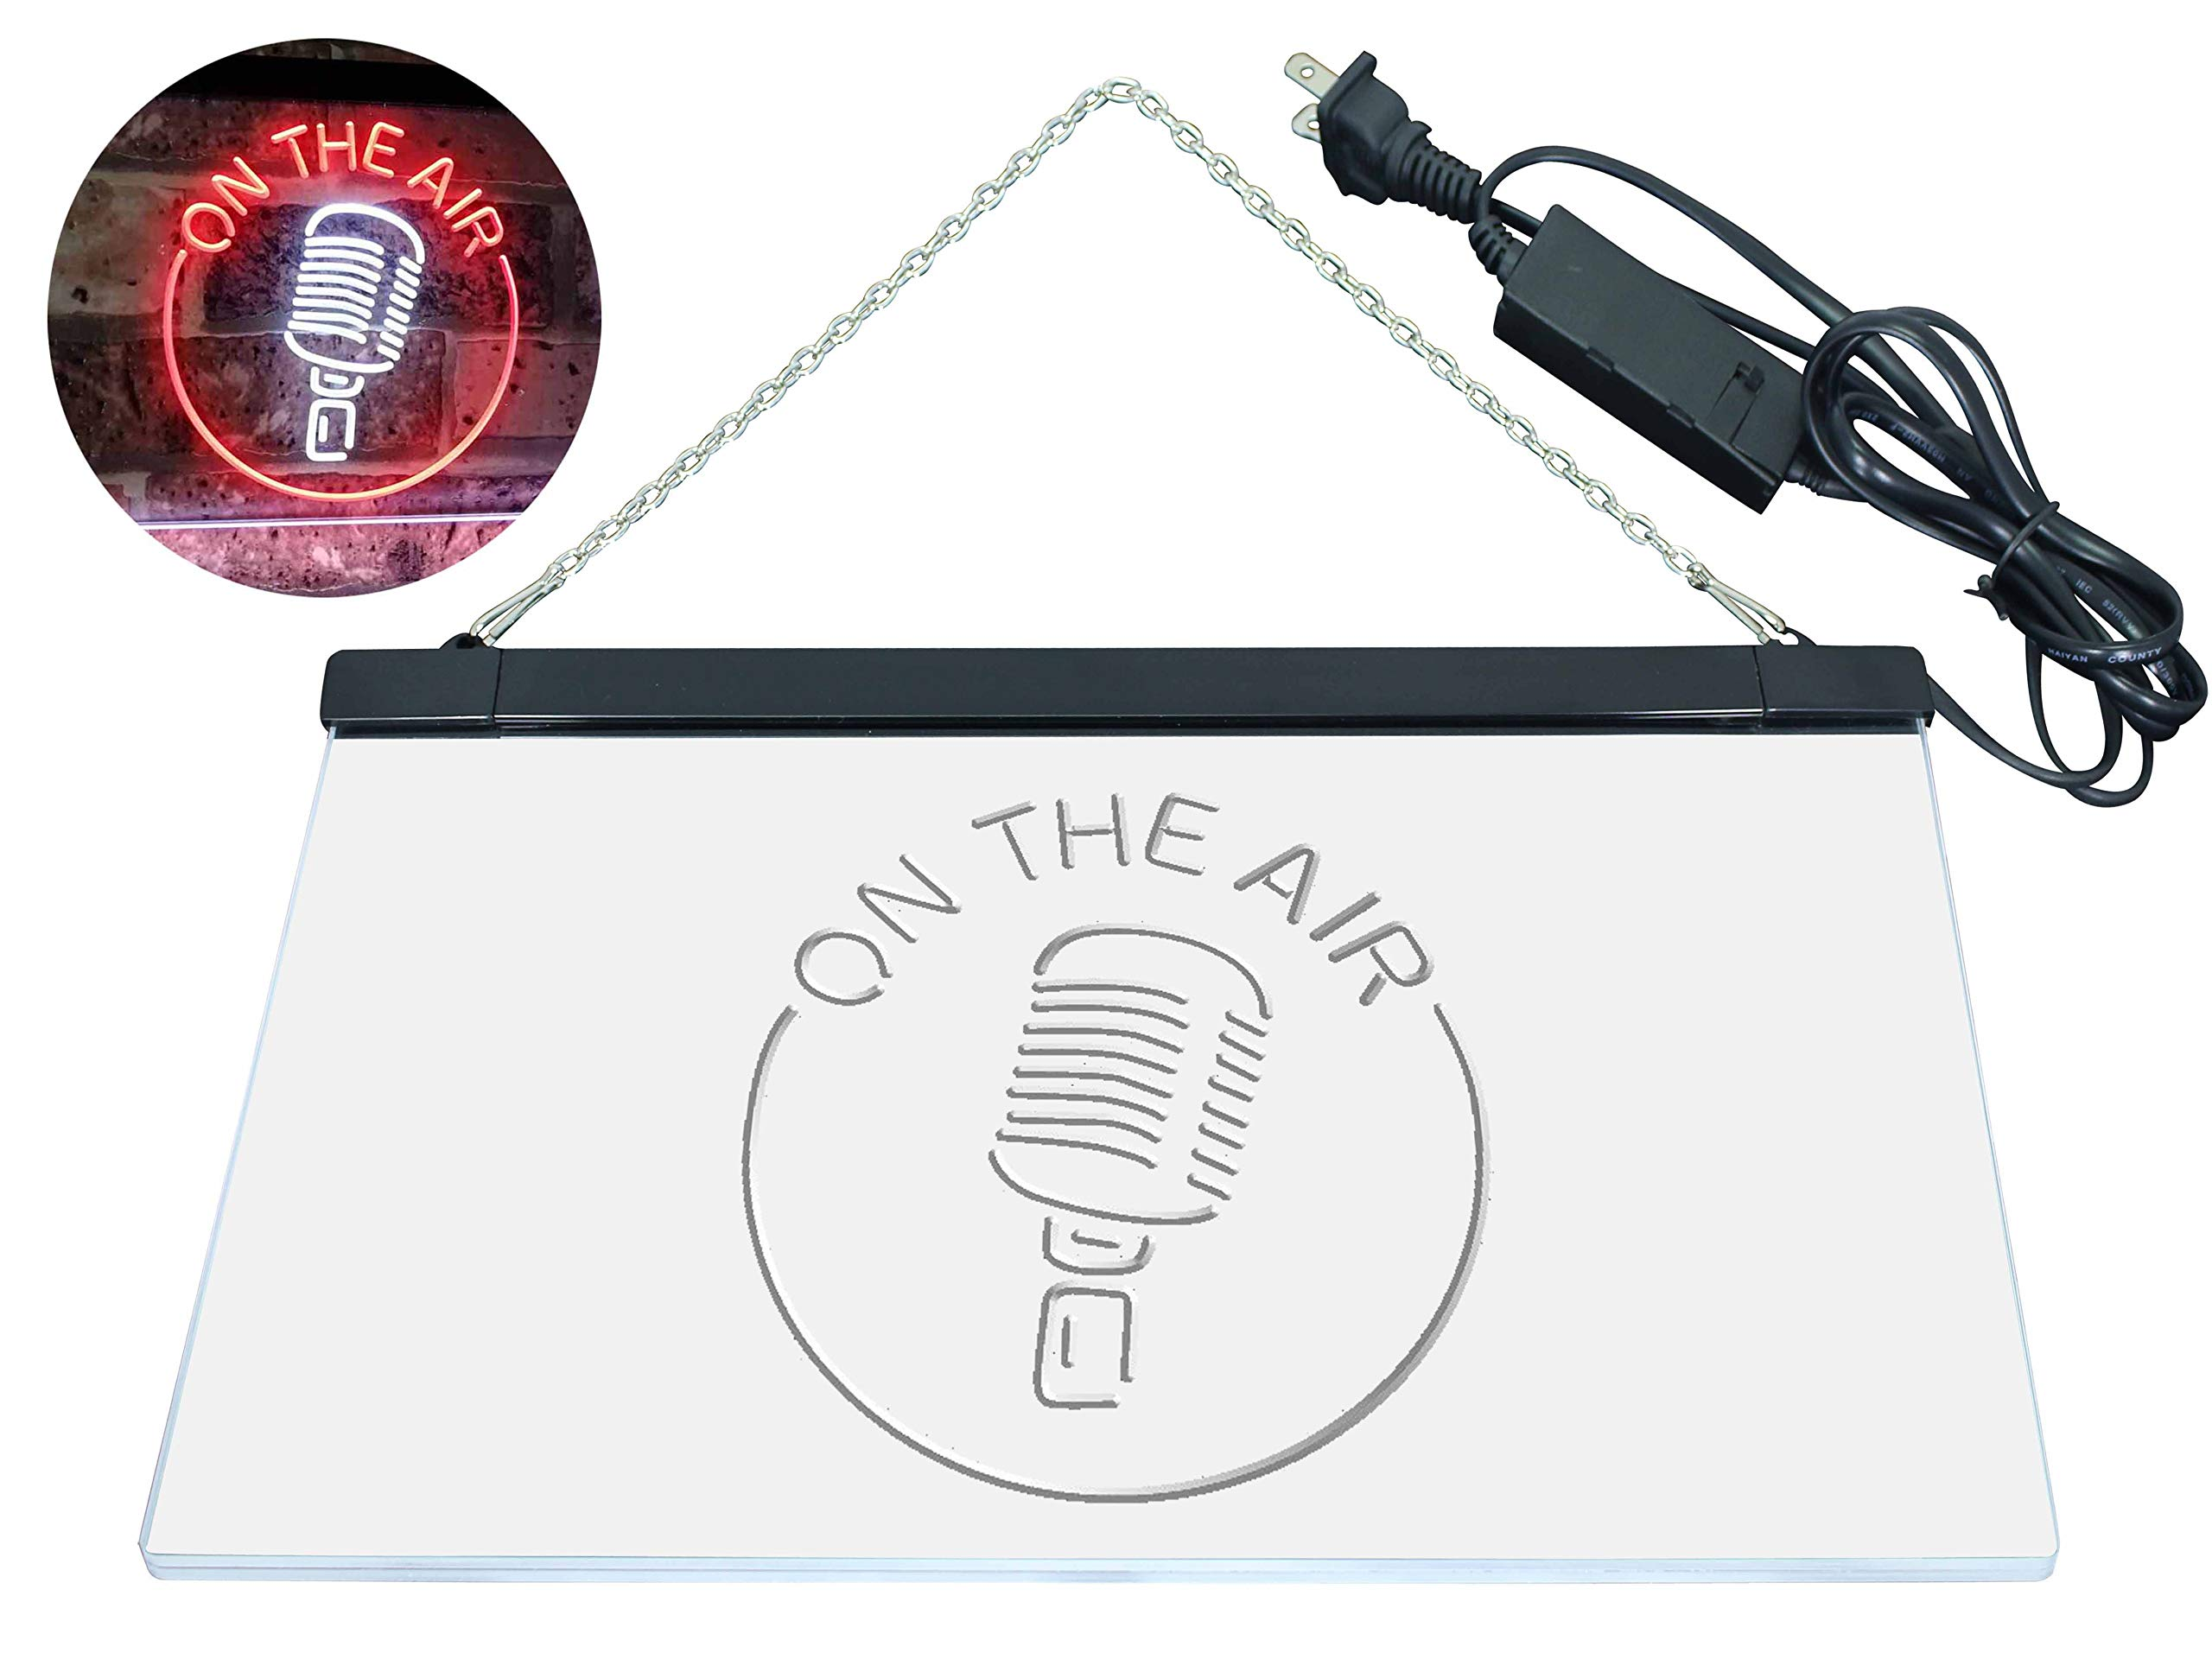 AdvpPro 2C On The Air Microphone Studio Recording Signal Dual Color LED Neon Sign White & Red 12'' x 8.5'' st6s32-m2028-wr by AdvpPro 2C (Image #1)